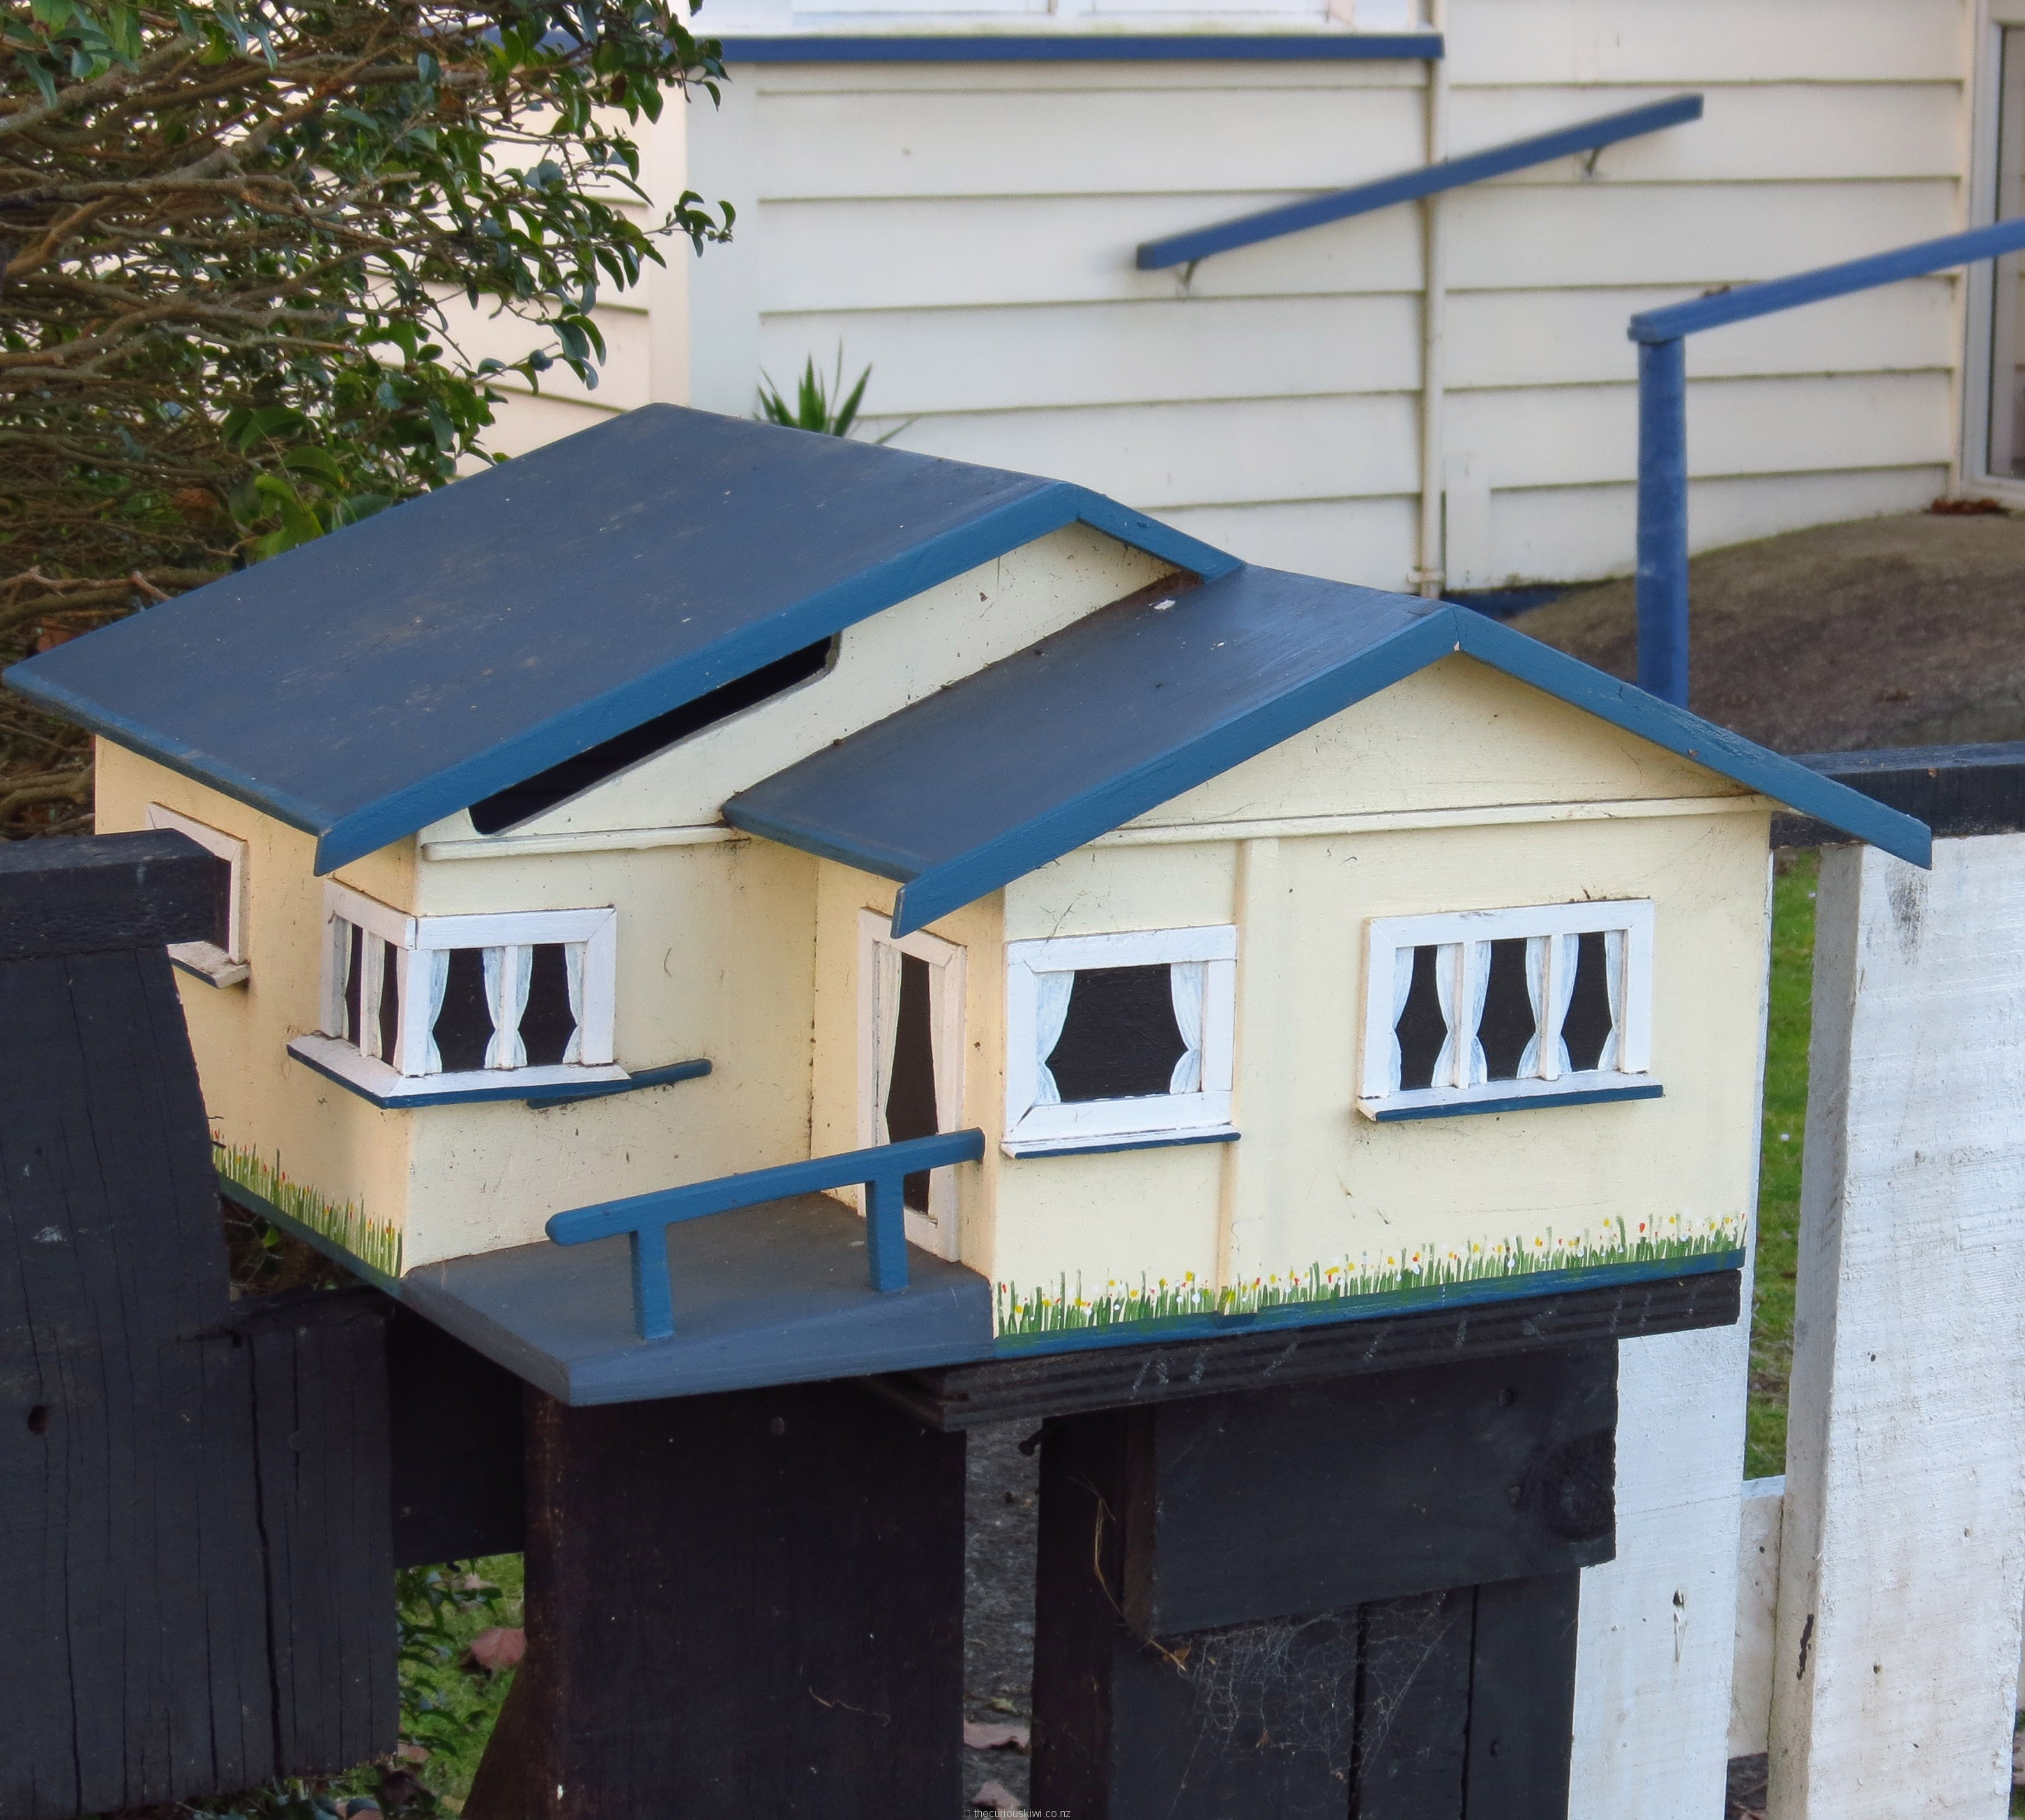 Neat letter box replica of a house near the beach